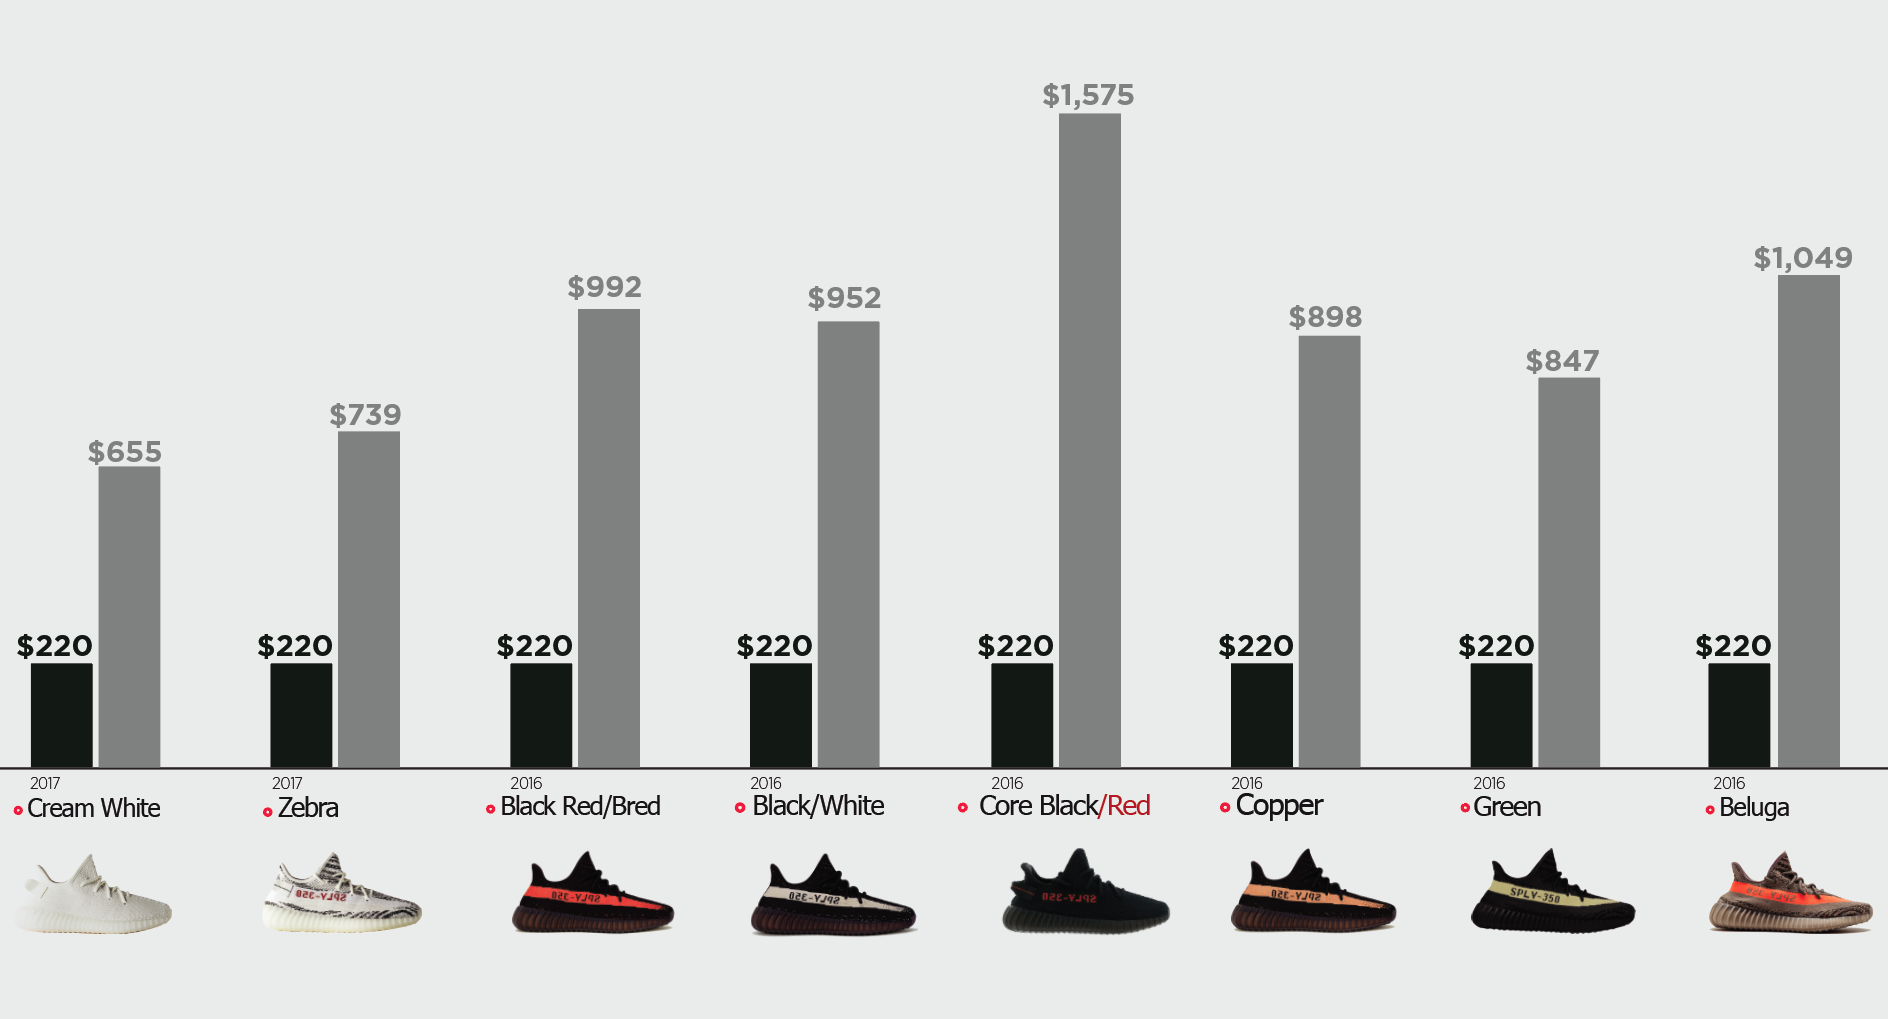 Yeezy Resale Prices Based on Goat